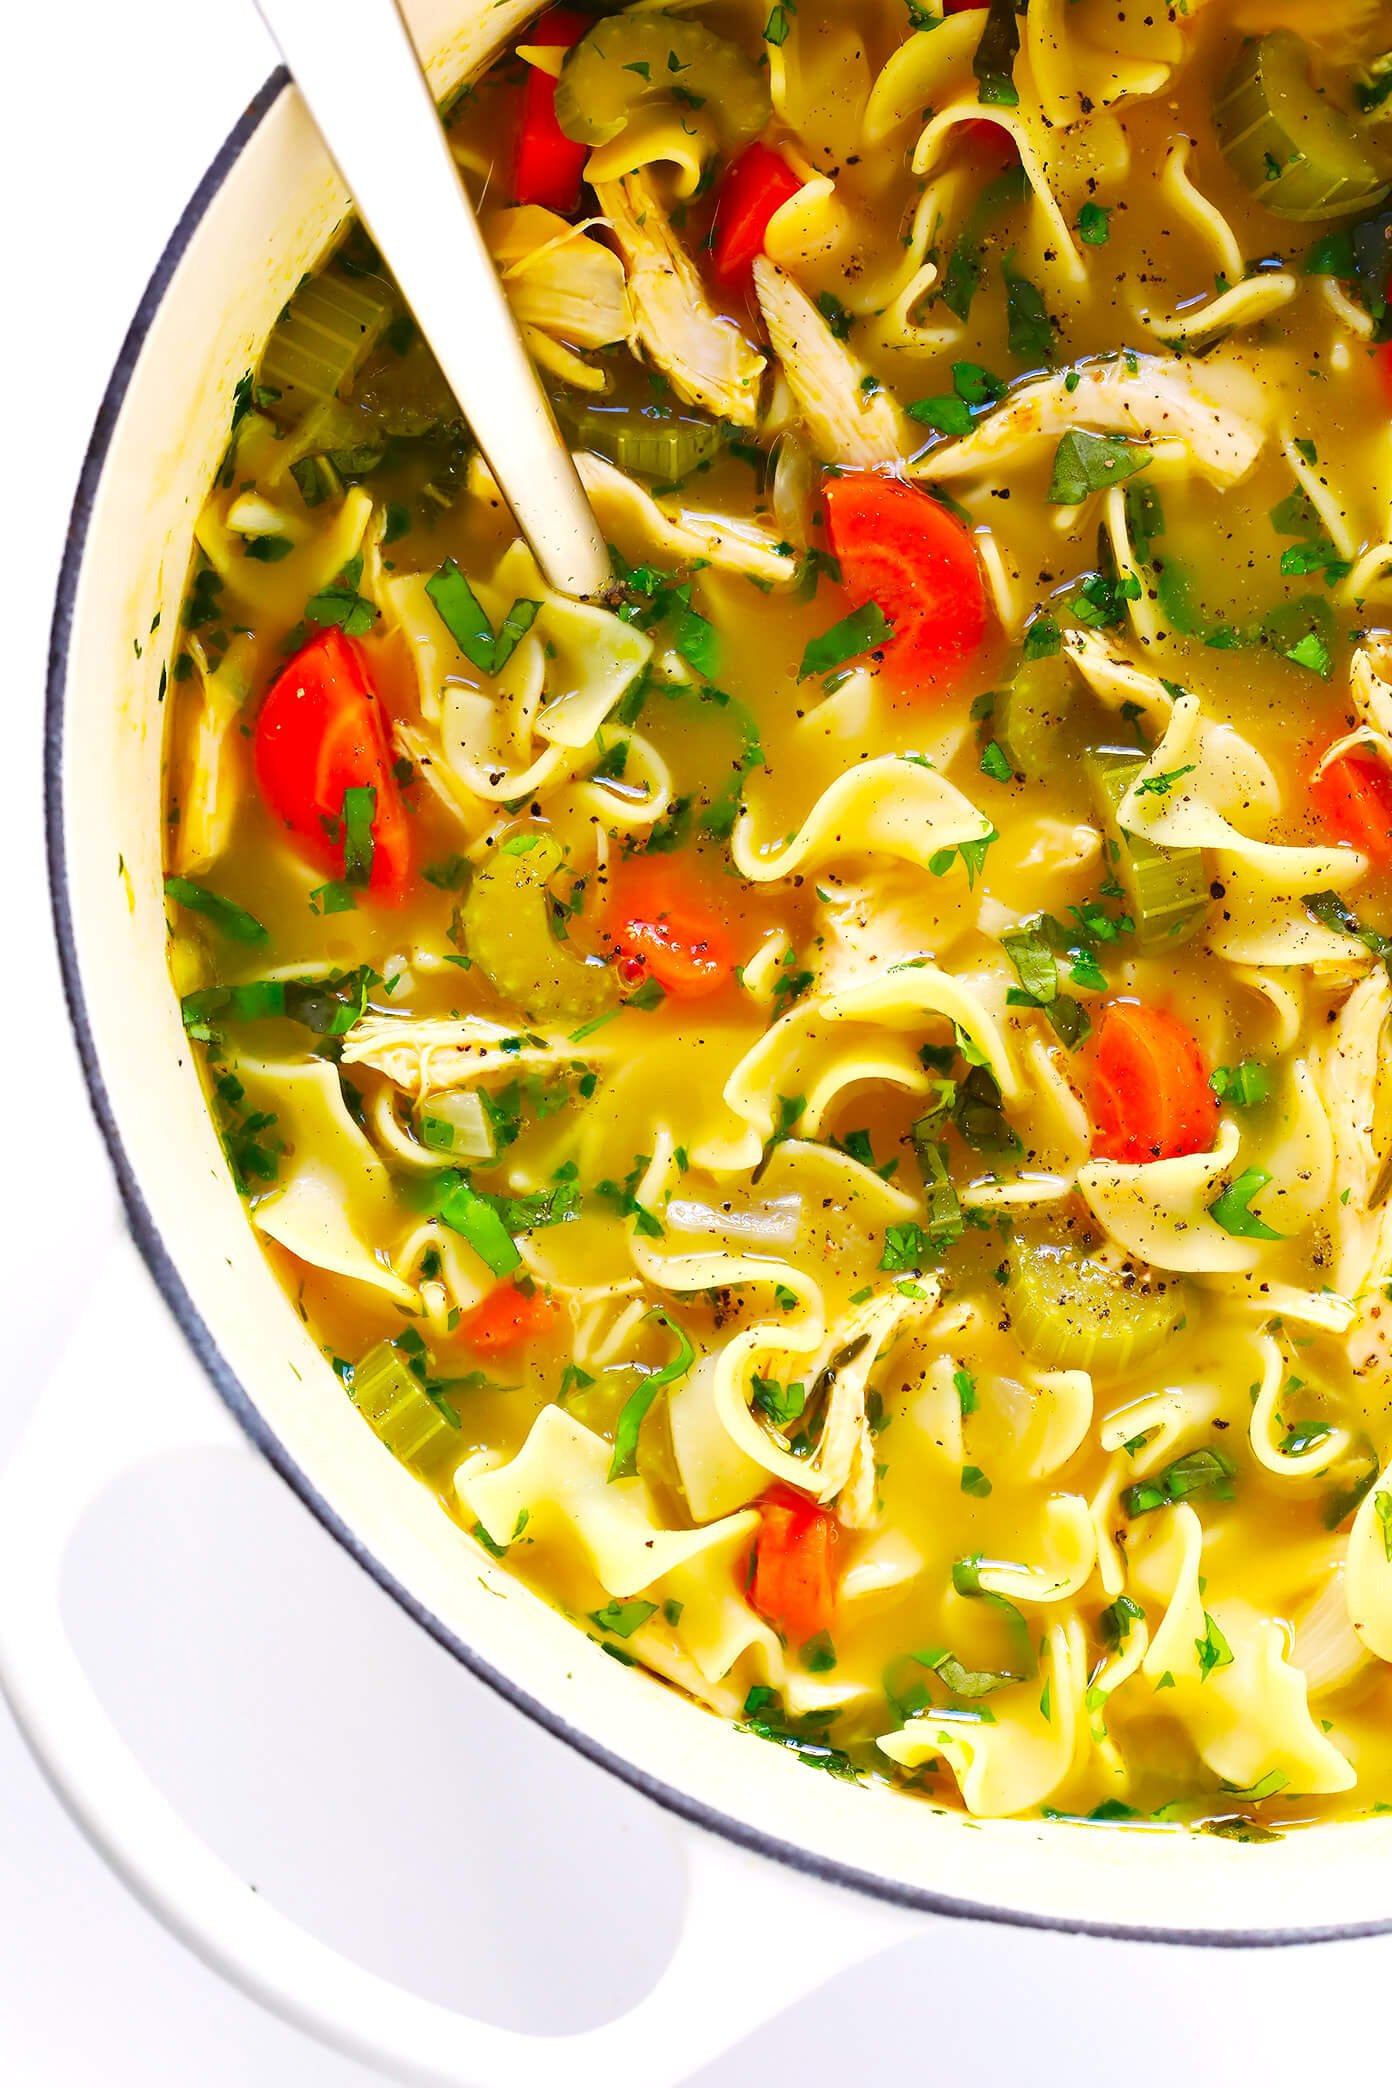 Herb-Loaded Chicken Noodle Soup Recipe